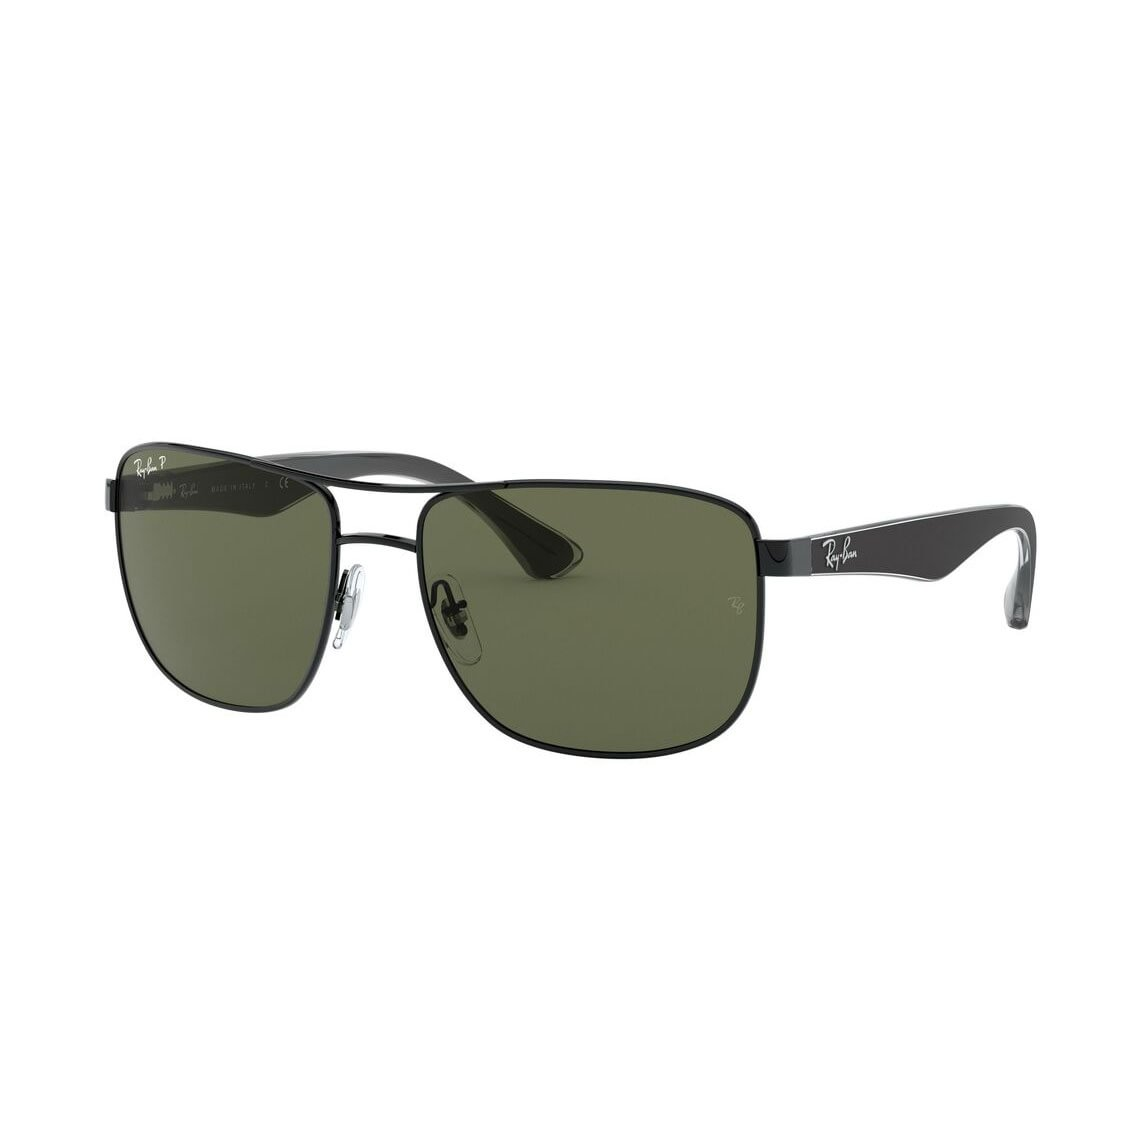 Ray-Ban RB3533 002/9A 57